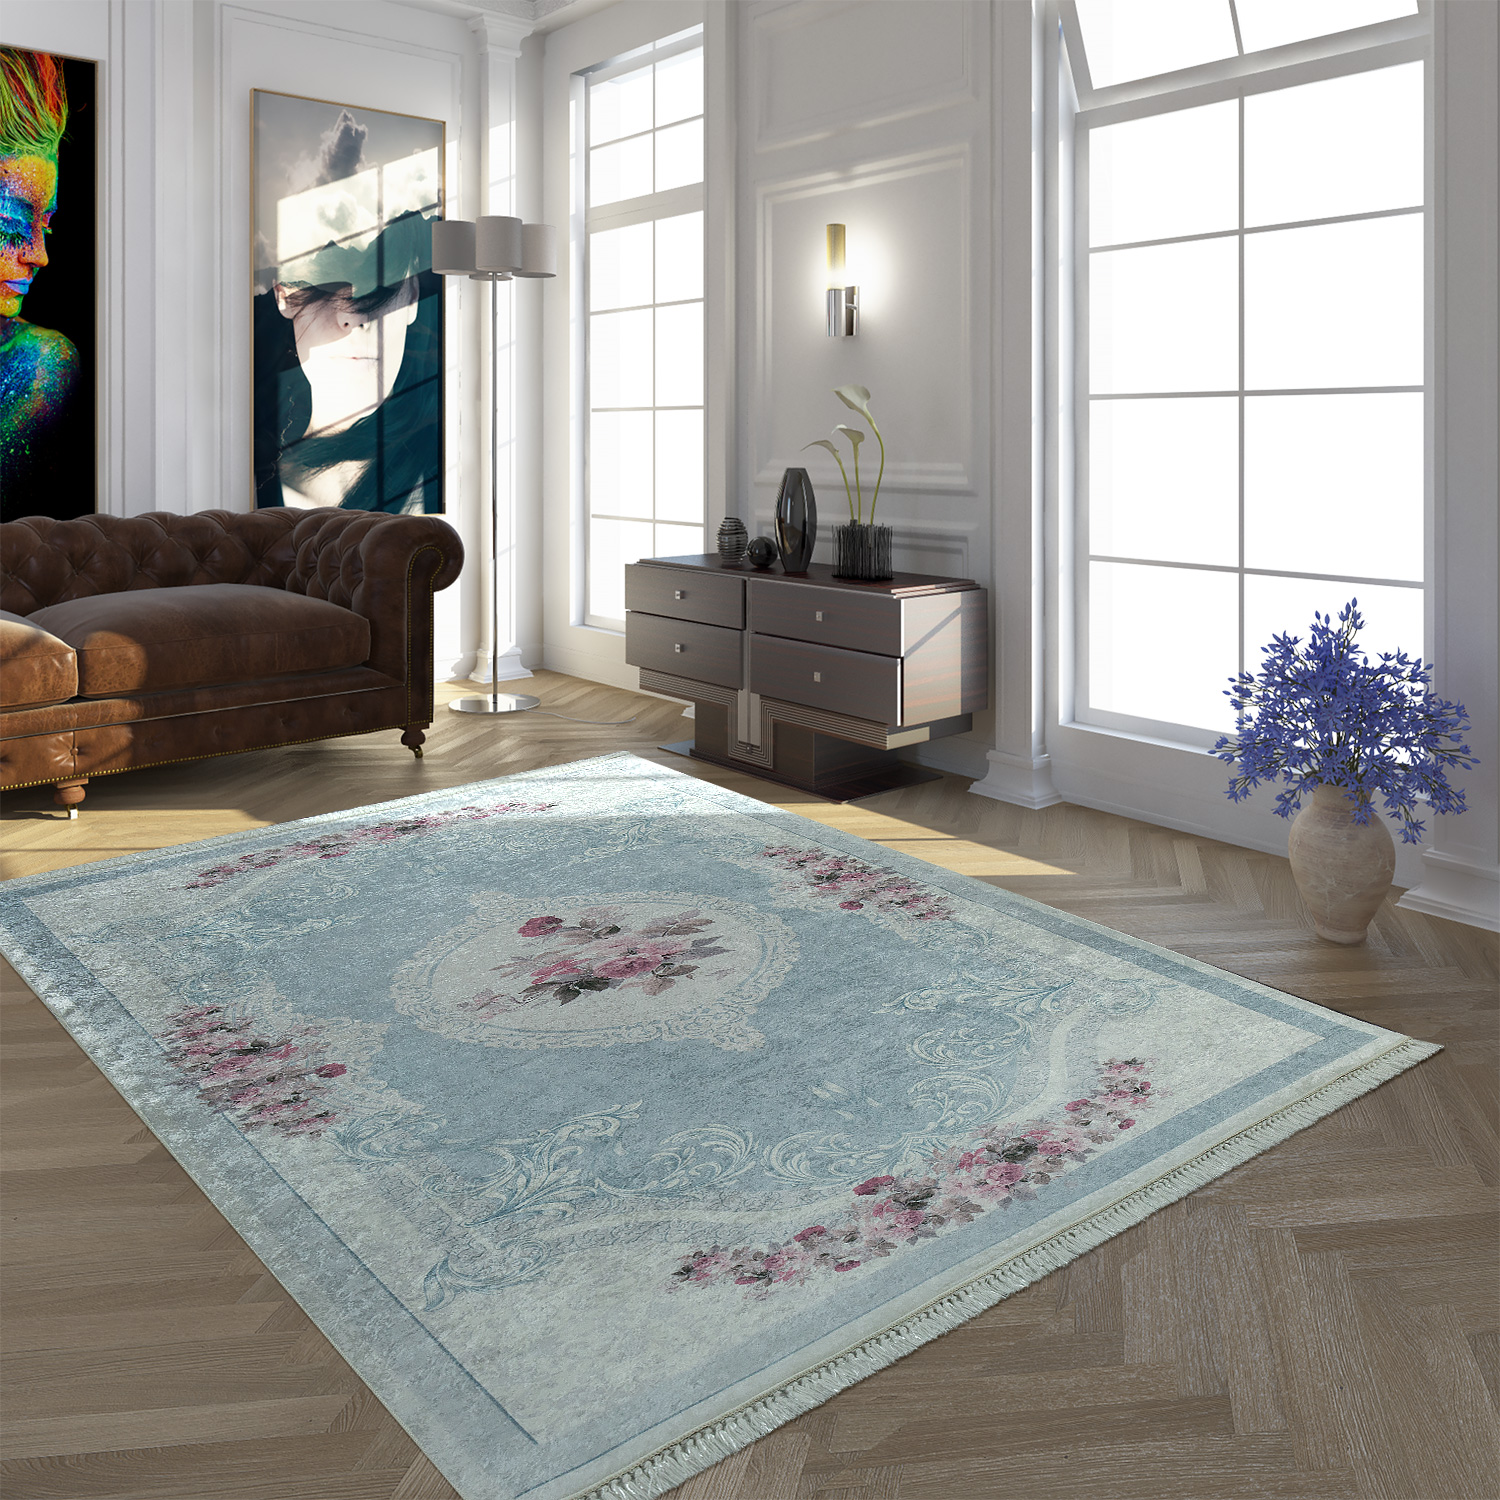 Modern Rug With Printed Vintage Pattern Trendy Design Pink Blue